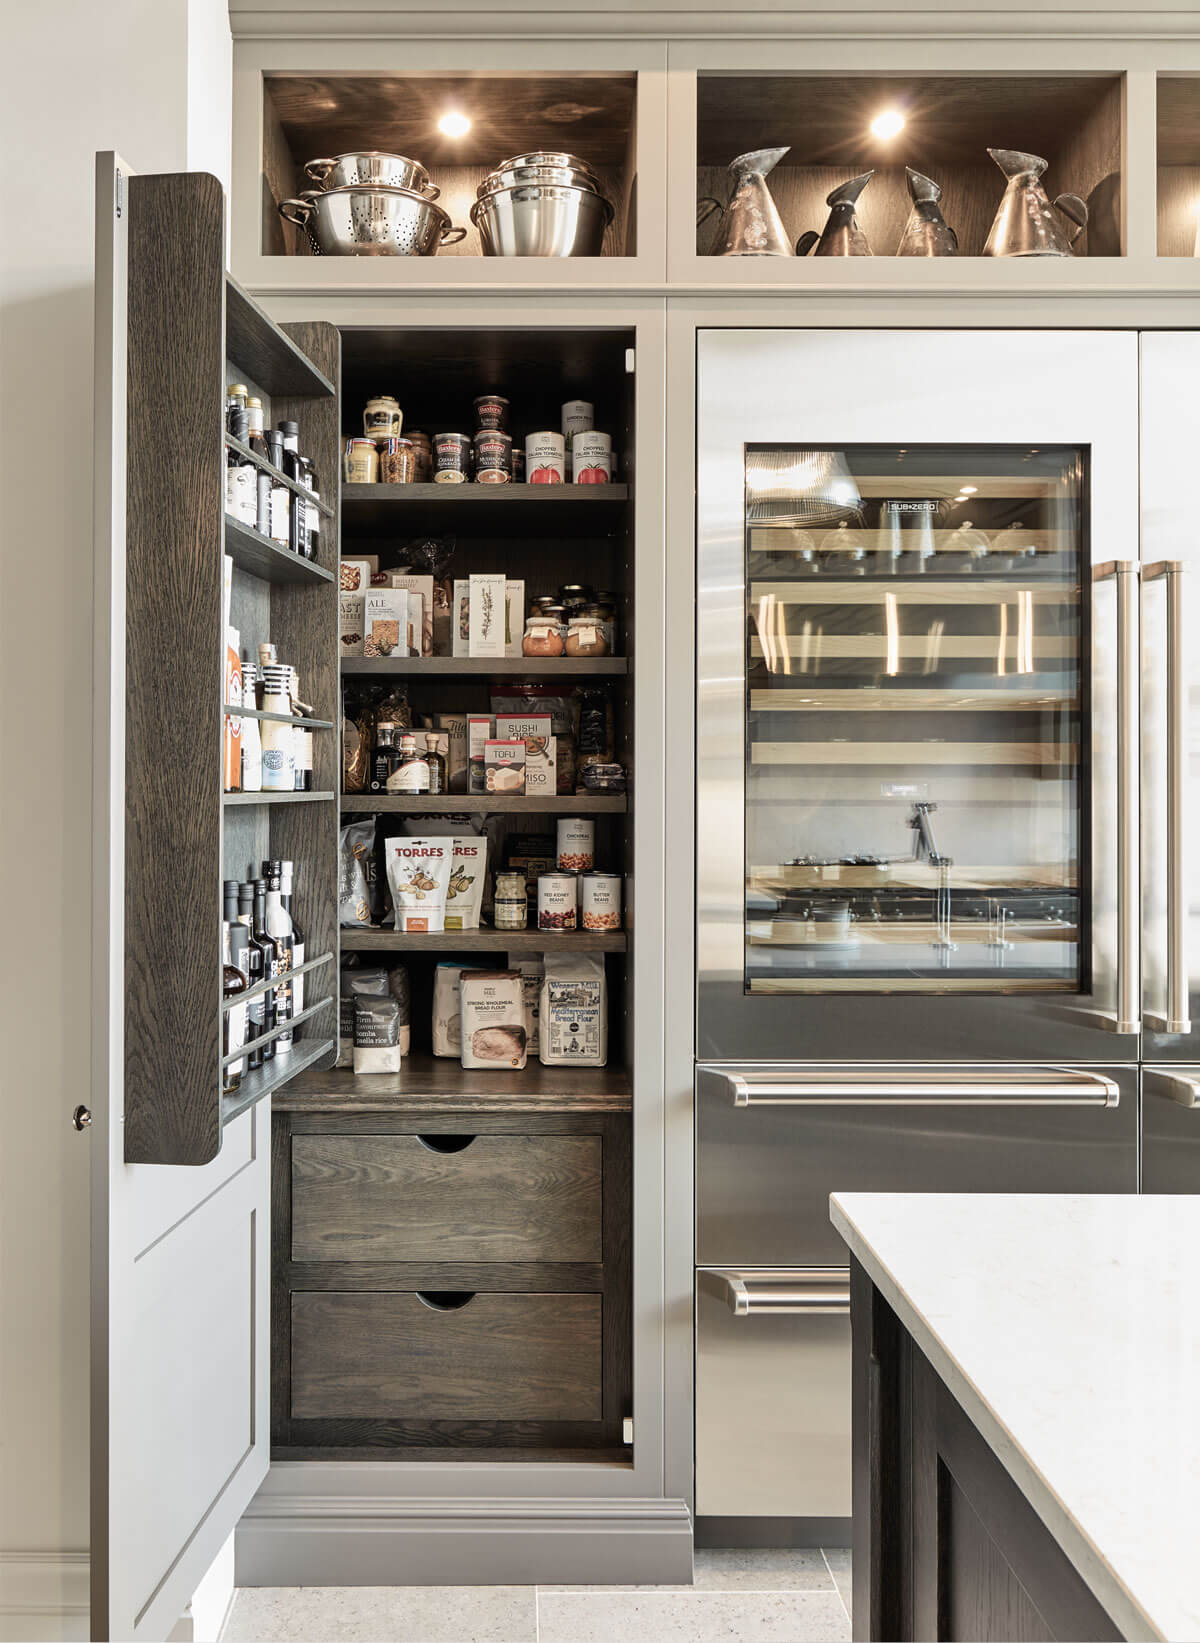 cluttered storage great or pantries best and cabinets pin turn dream into these disorganized pantry nightmare larder kitchen your ideas a pantrys is organizers with